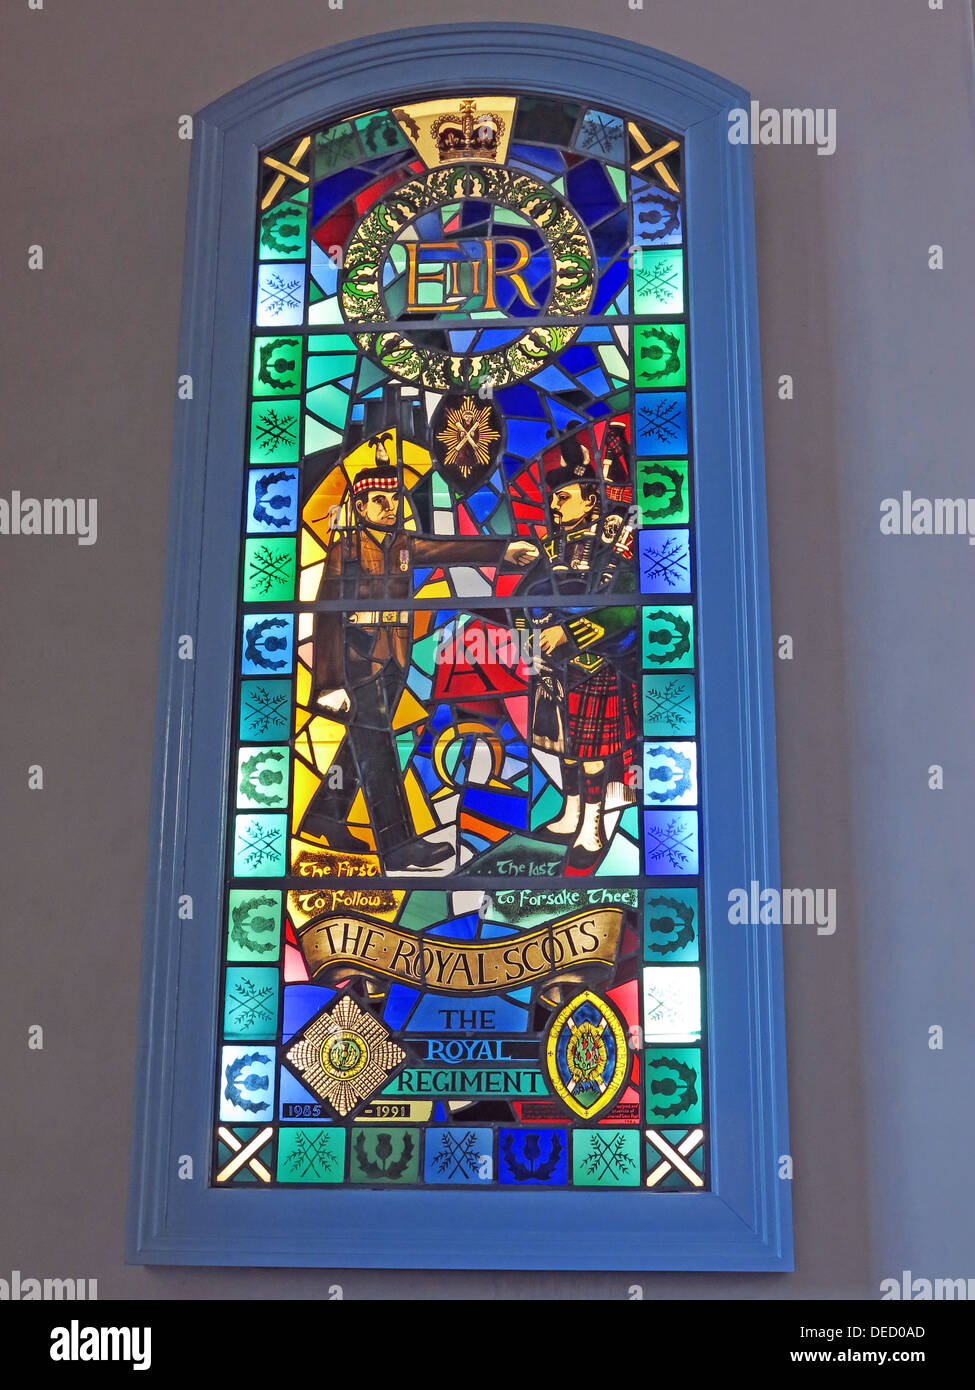 soldiers,soldier,stained,glass,memorial,1985-1991,blue,Scottish,Edinburgh,Scotland,UK,The,last,to,forsake,thee,Royal,Regiment,Royal Scots,Royal Scots Regiment,Stained Glass,memorial window,Kirk of Holyrood House,Holyrood House,Regimental Kirk,The first to follow,,,,GoTonySmith,@HotpixUK,church,chapel,Buy Pictures of,Buy Images Of,Images of,Stock Images,Royal Regiment window,Canongate Kirk